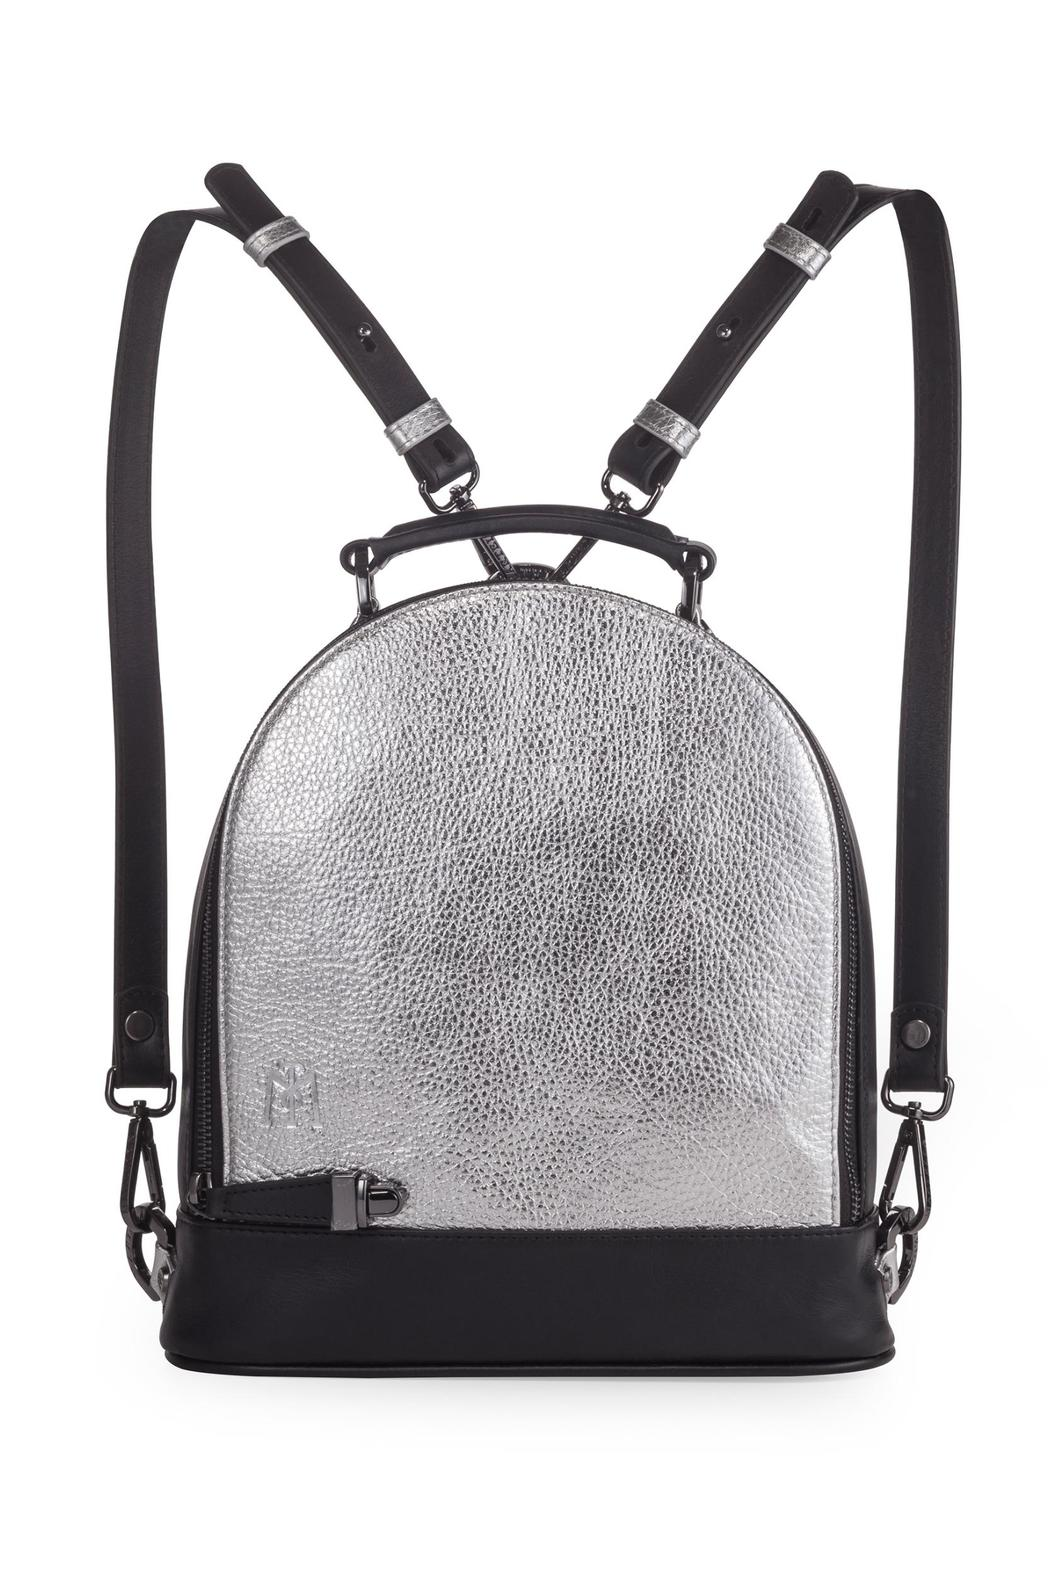 Martella Bags Metallic Leather Backpack - Main Image